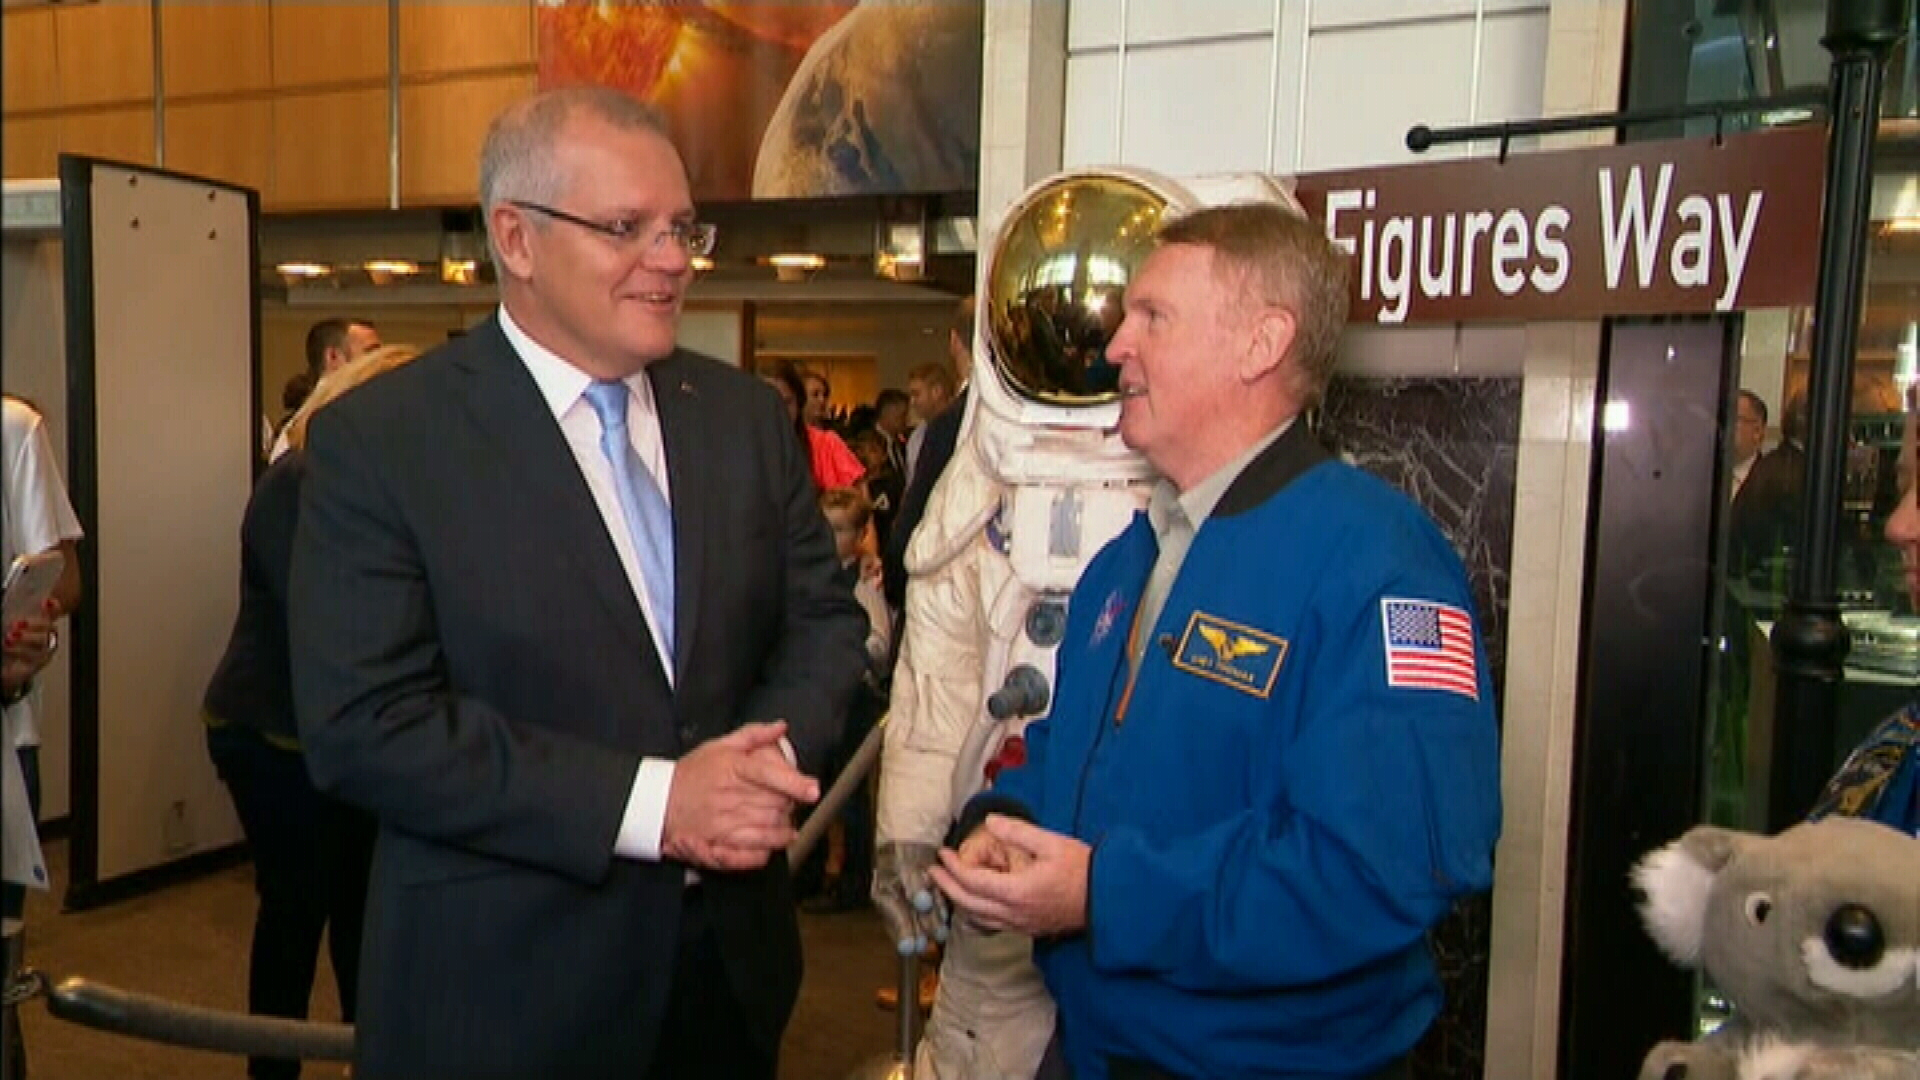 'Beam us up': ScoMo signs $150m deal to help NASA get to Mars